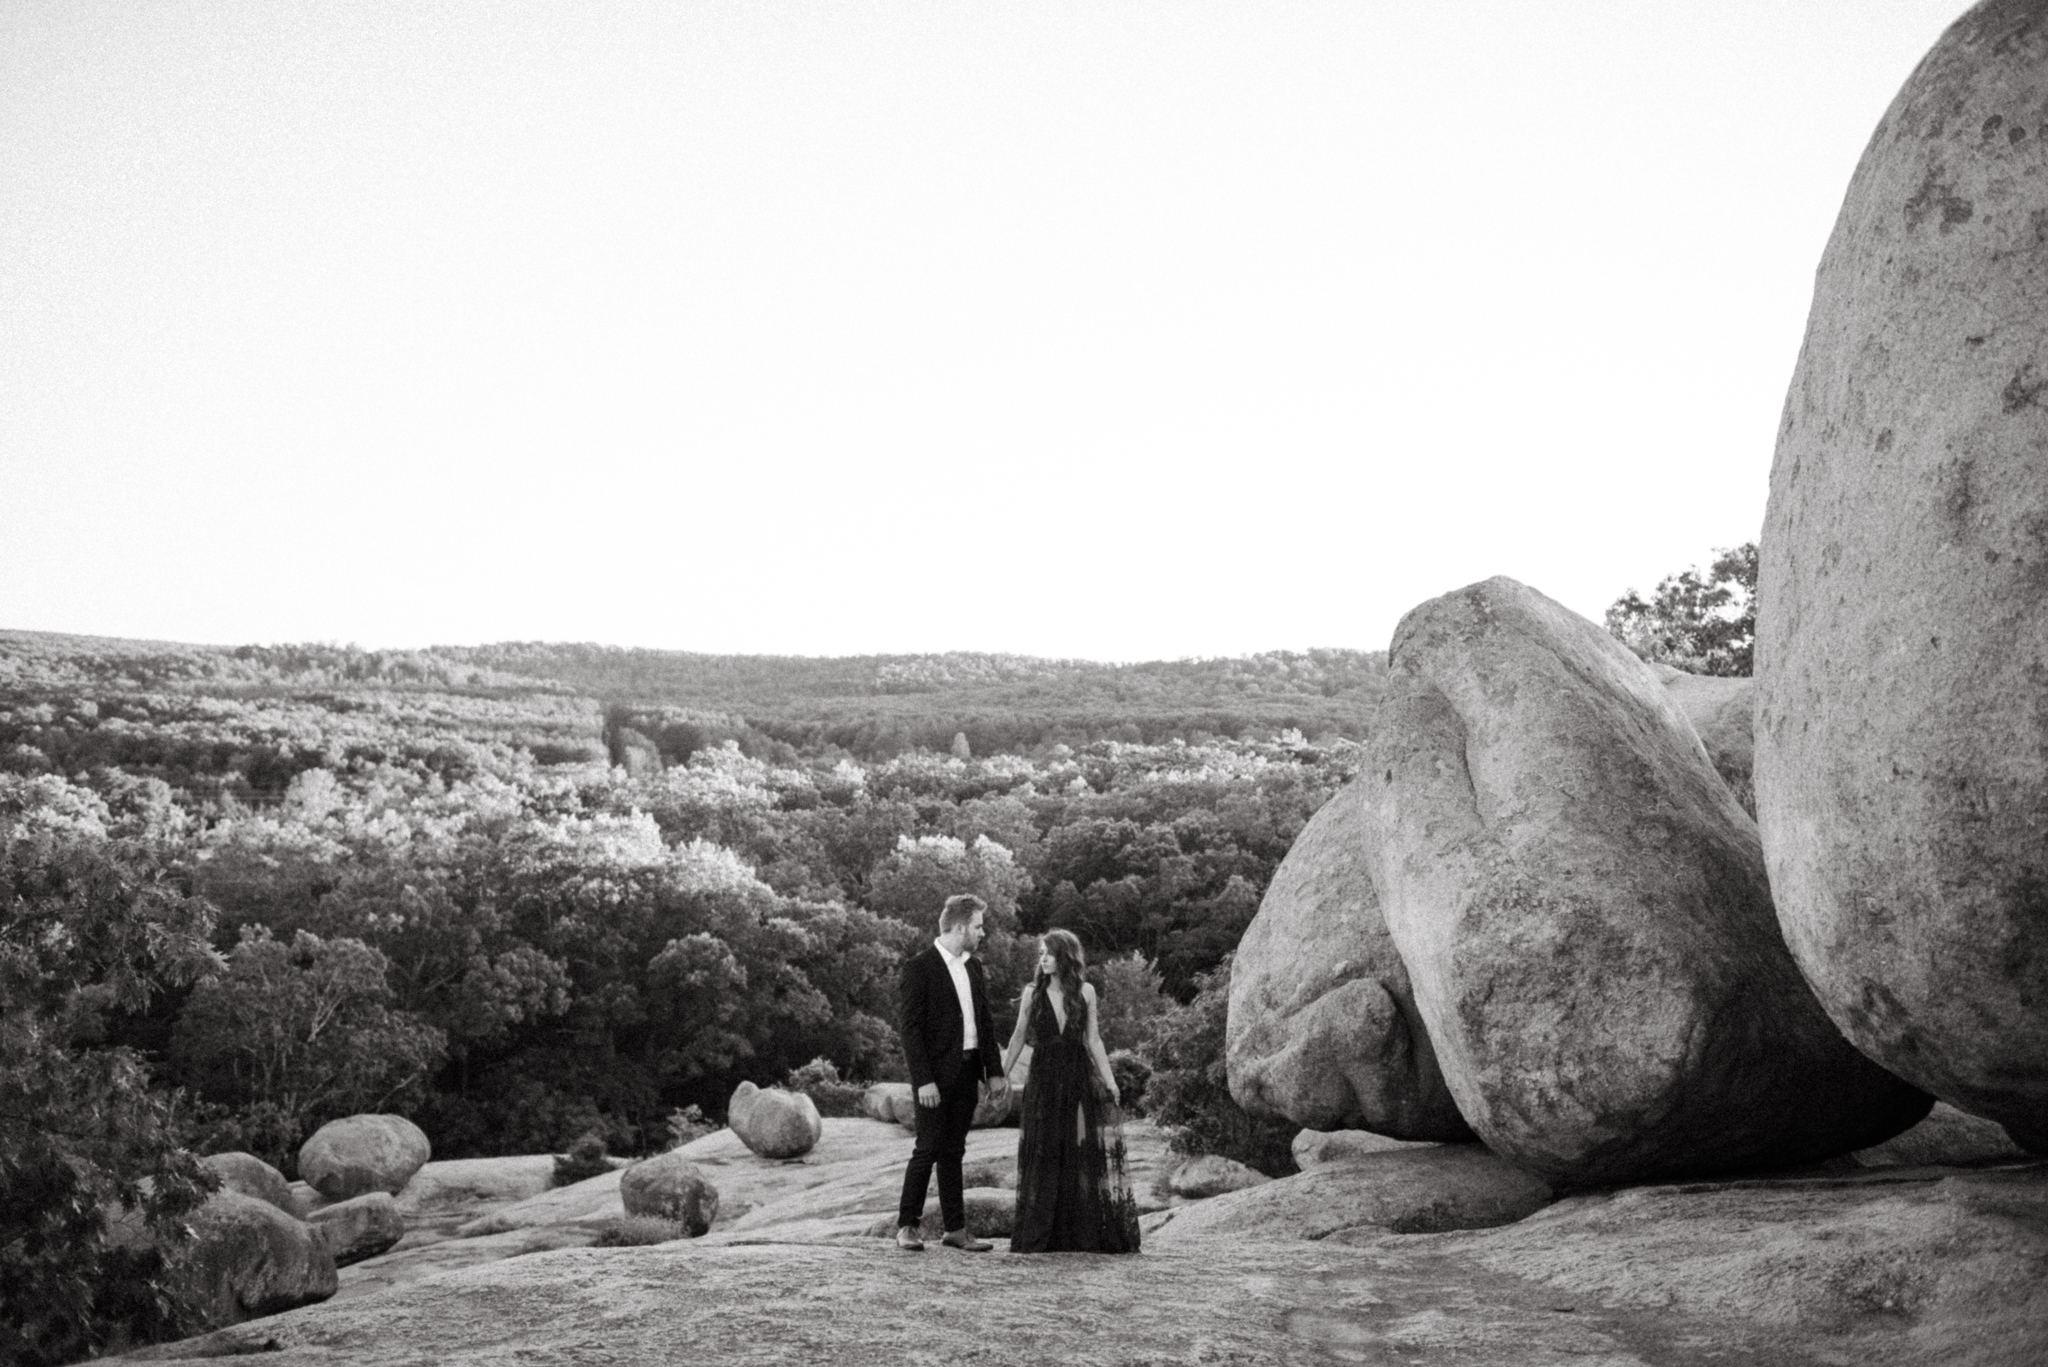 Zach and Rosalie - Missouri Wedding Photographer - Elephant rocks state park anniversary session -7155.jpg